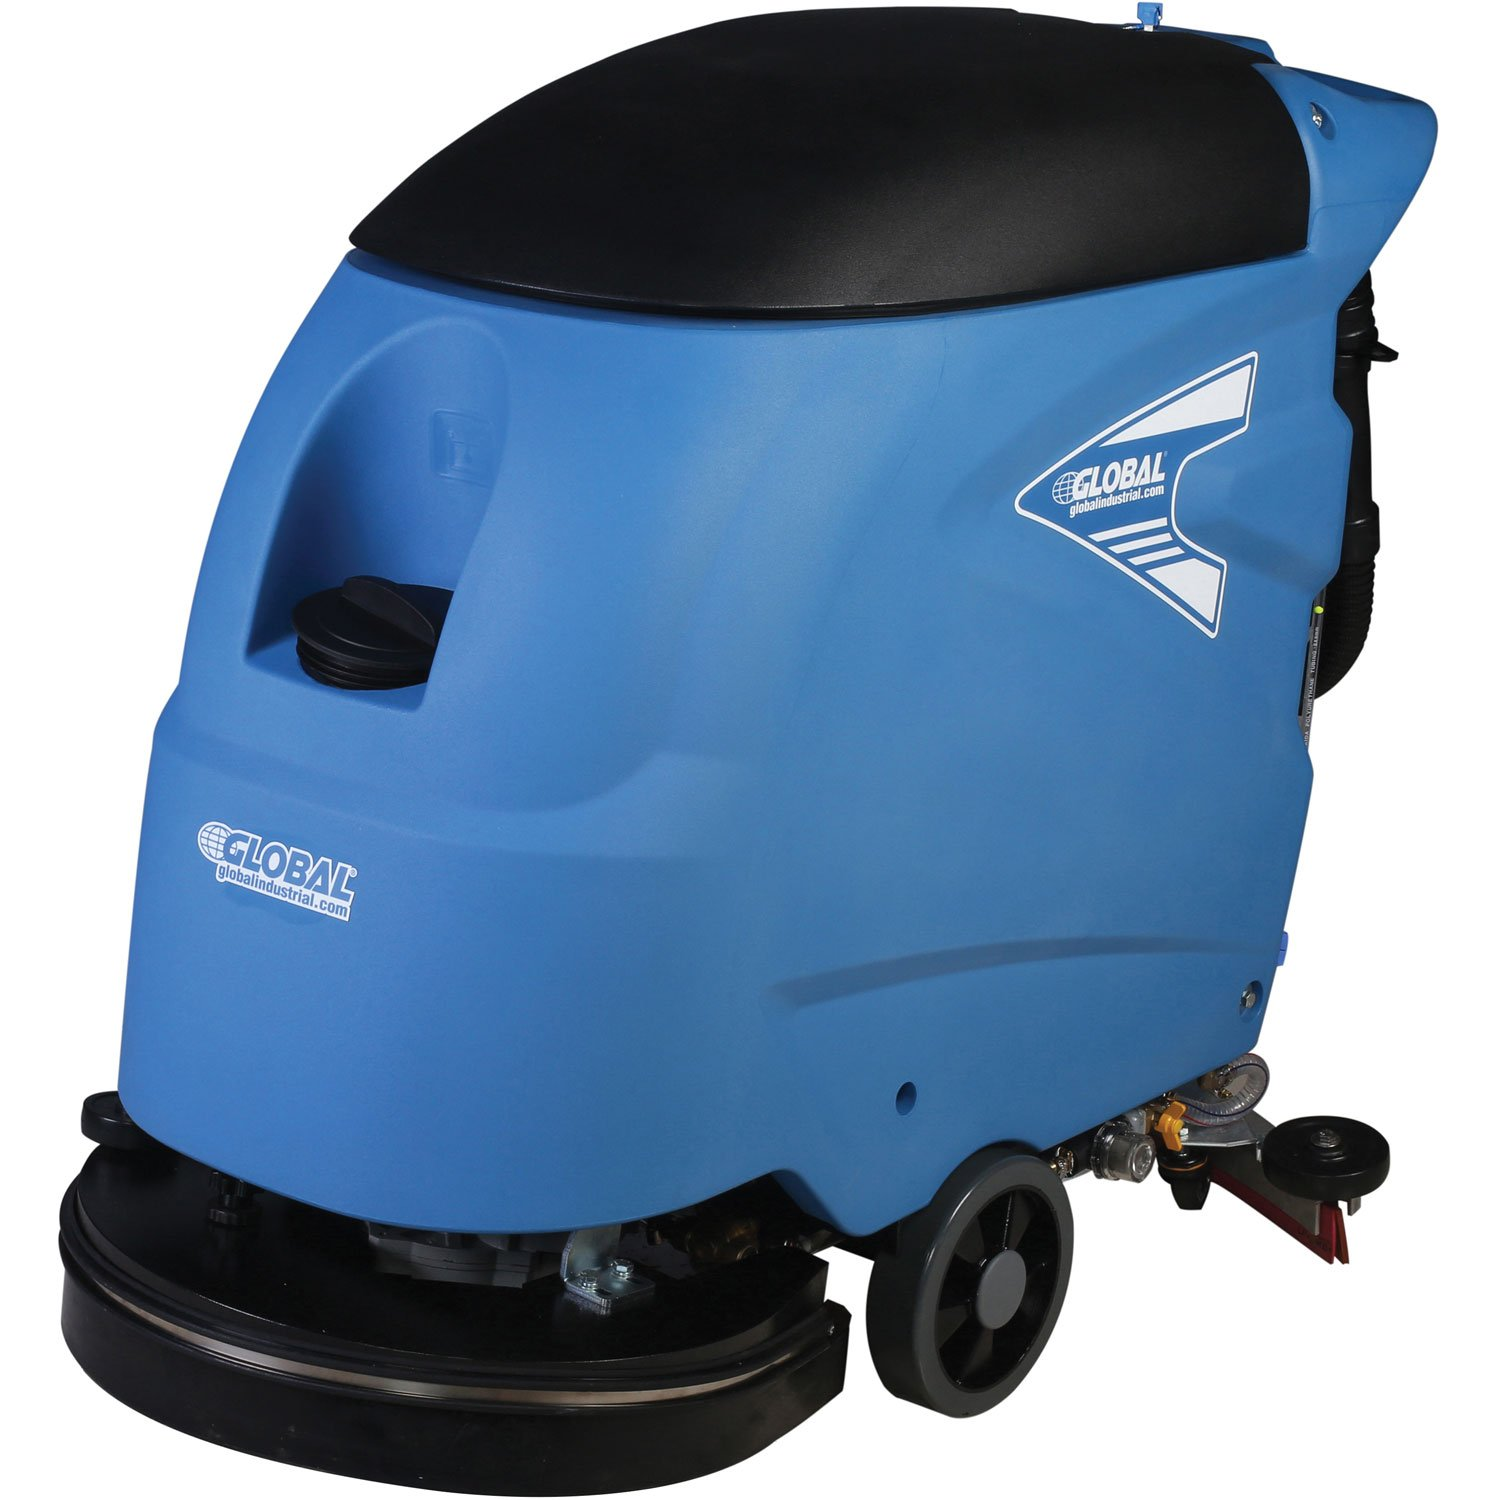 20' Electric Auto Floor Scrubber, Corded Global Industrial T45/50E